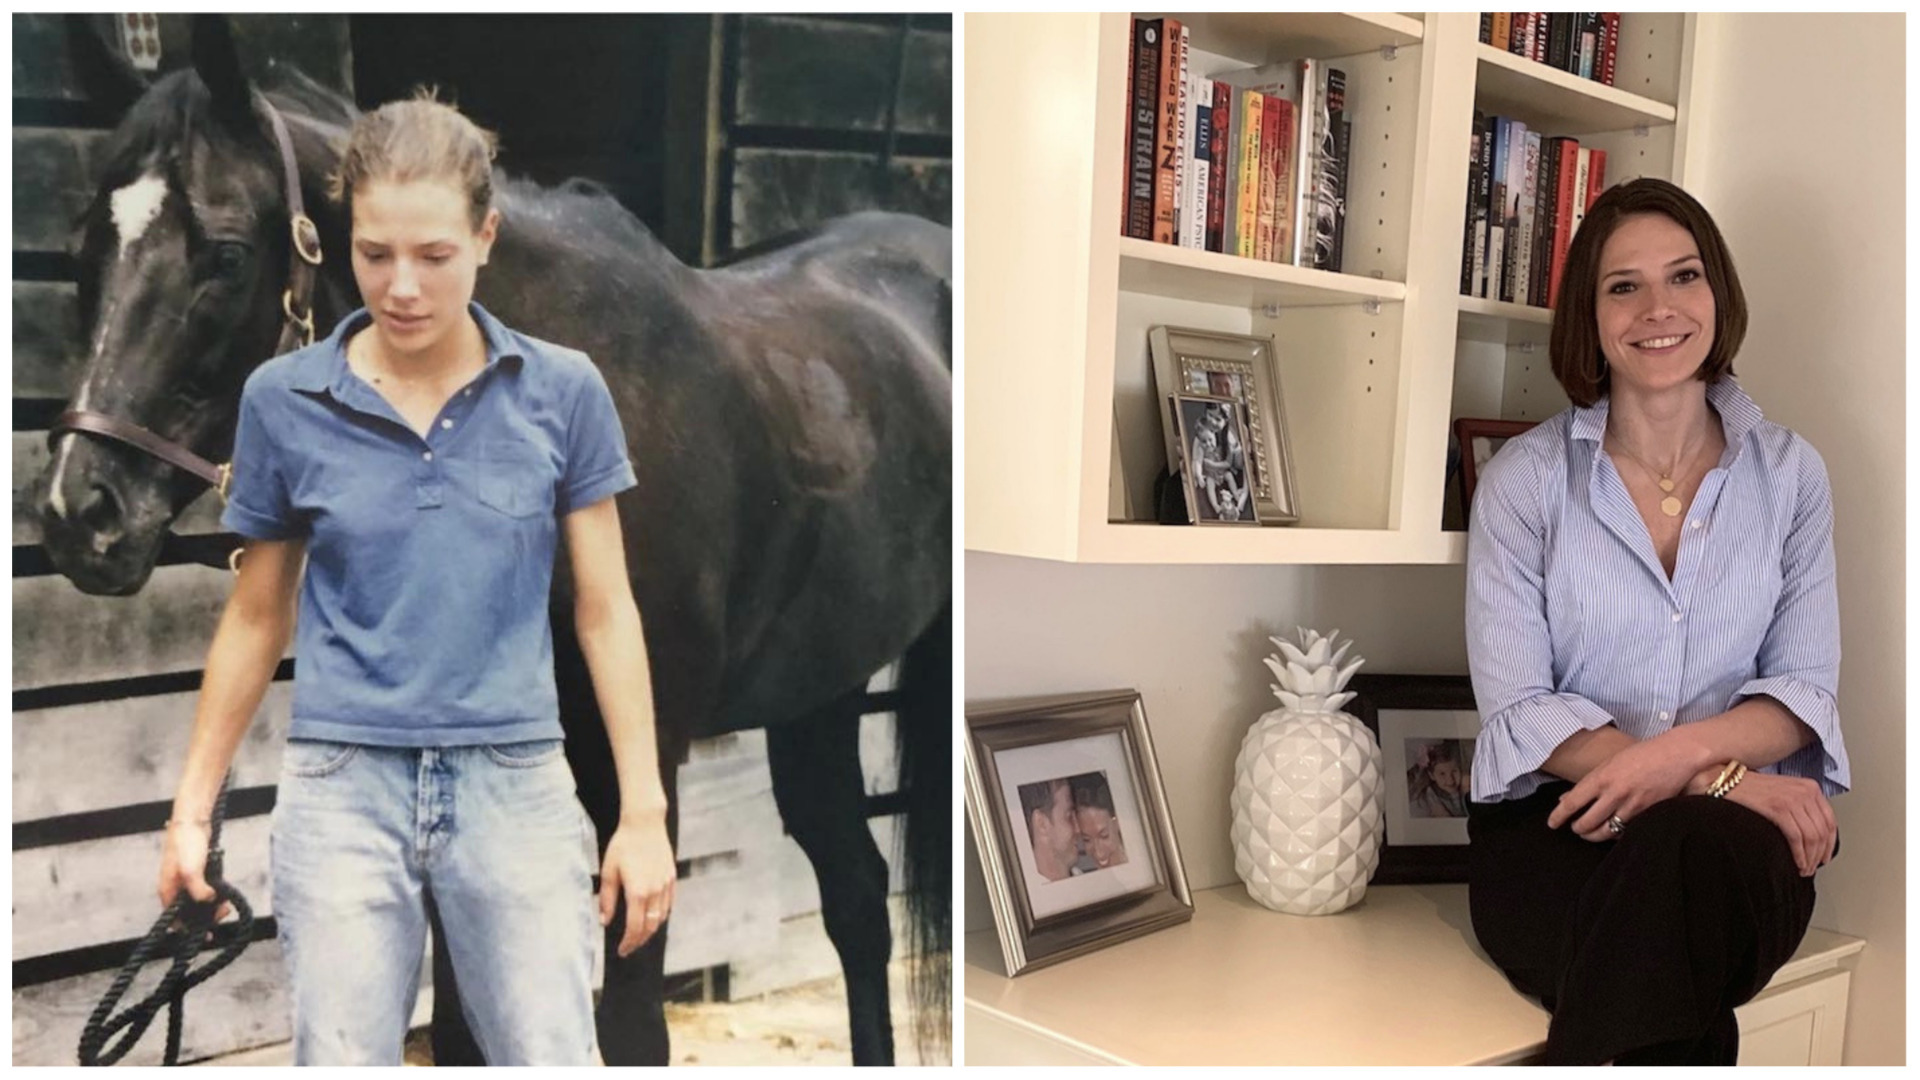 f2d95d8d8f6 Devon Horse Show edition: Survivor Kirstin Day back in the saddle, What's  new in 2019, Shop the show. Plus, Cryoskin is here (!), Picket Post Pickle,  ...